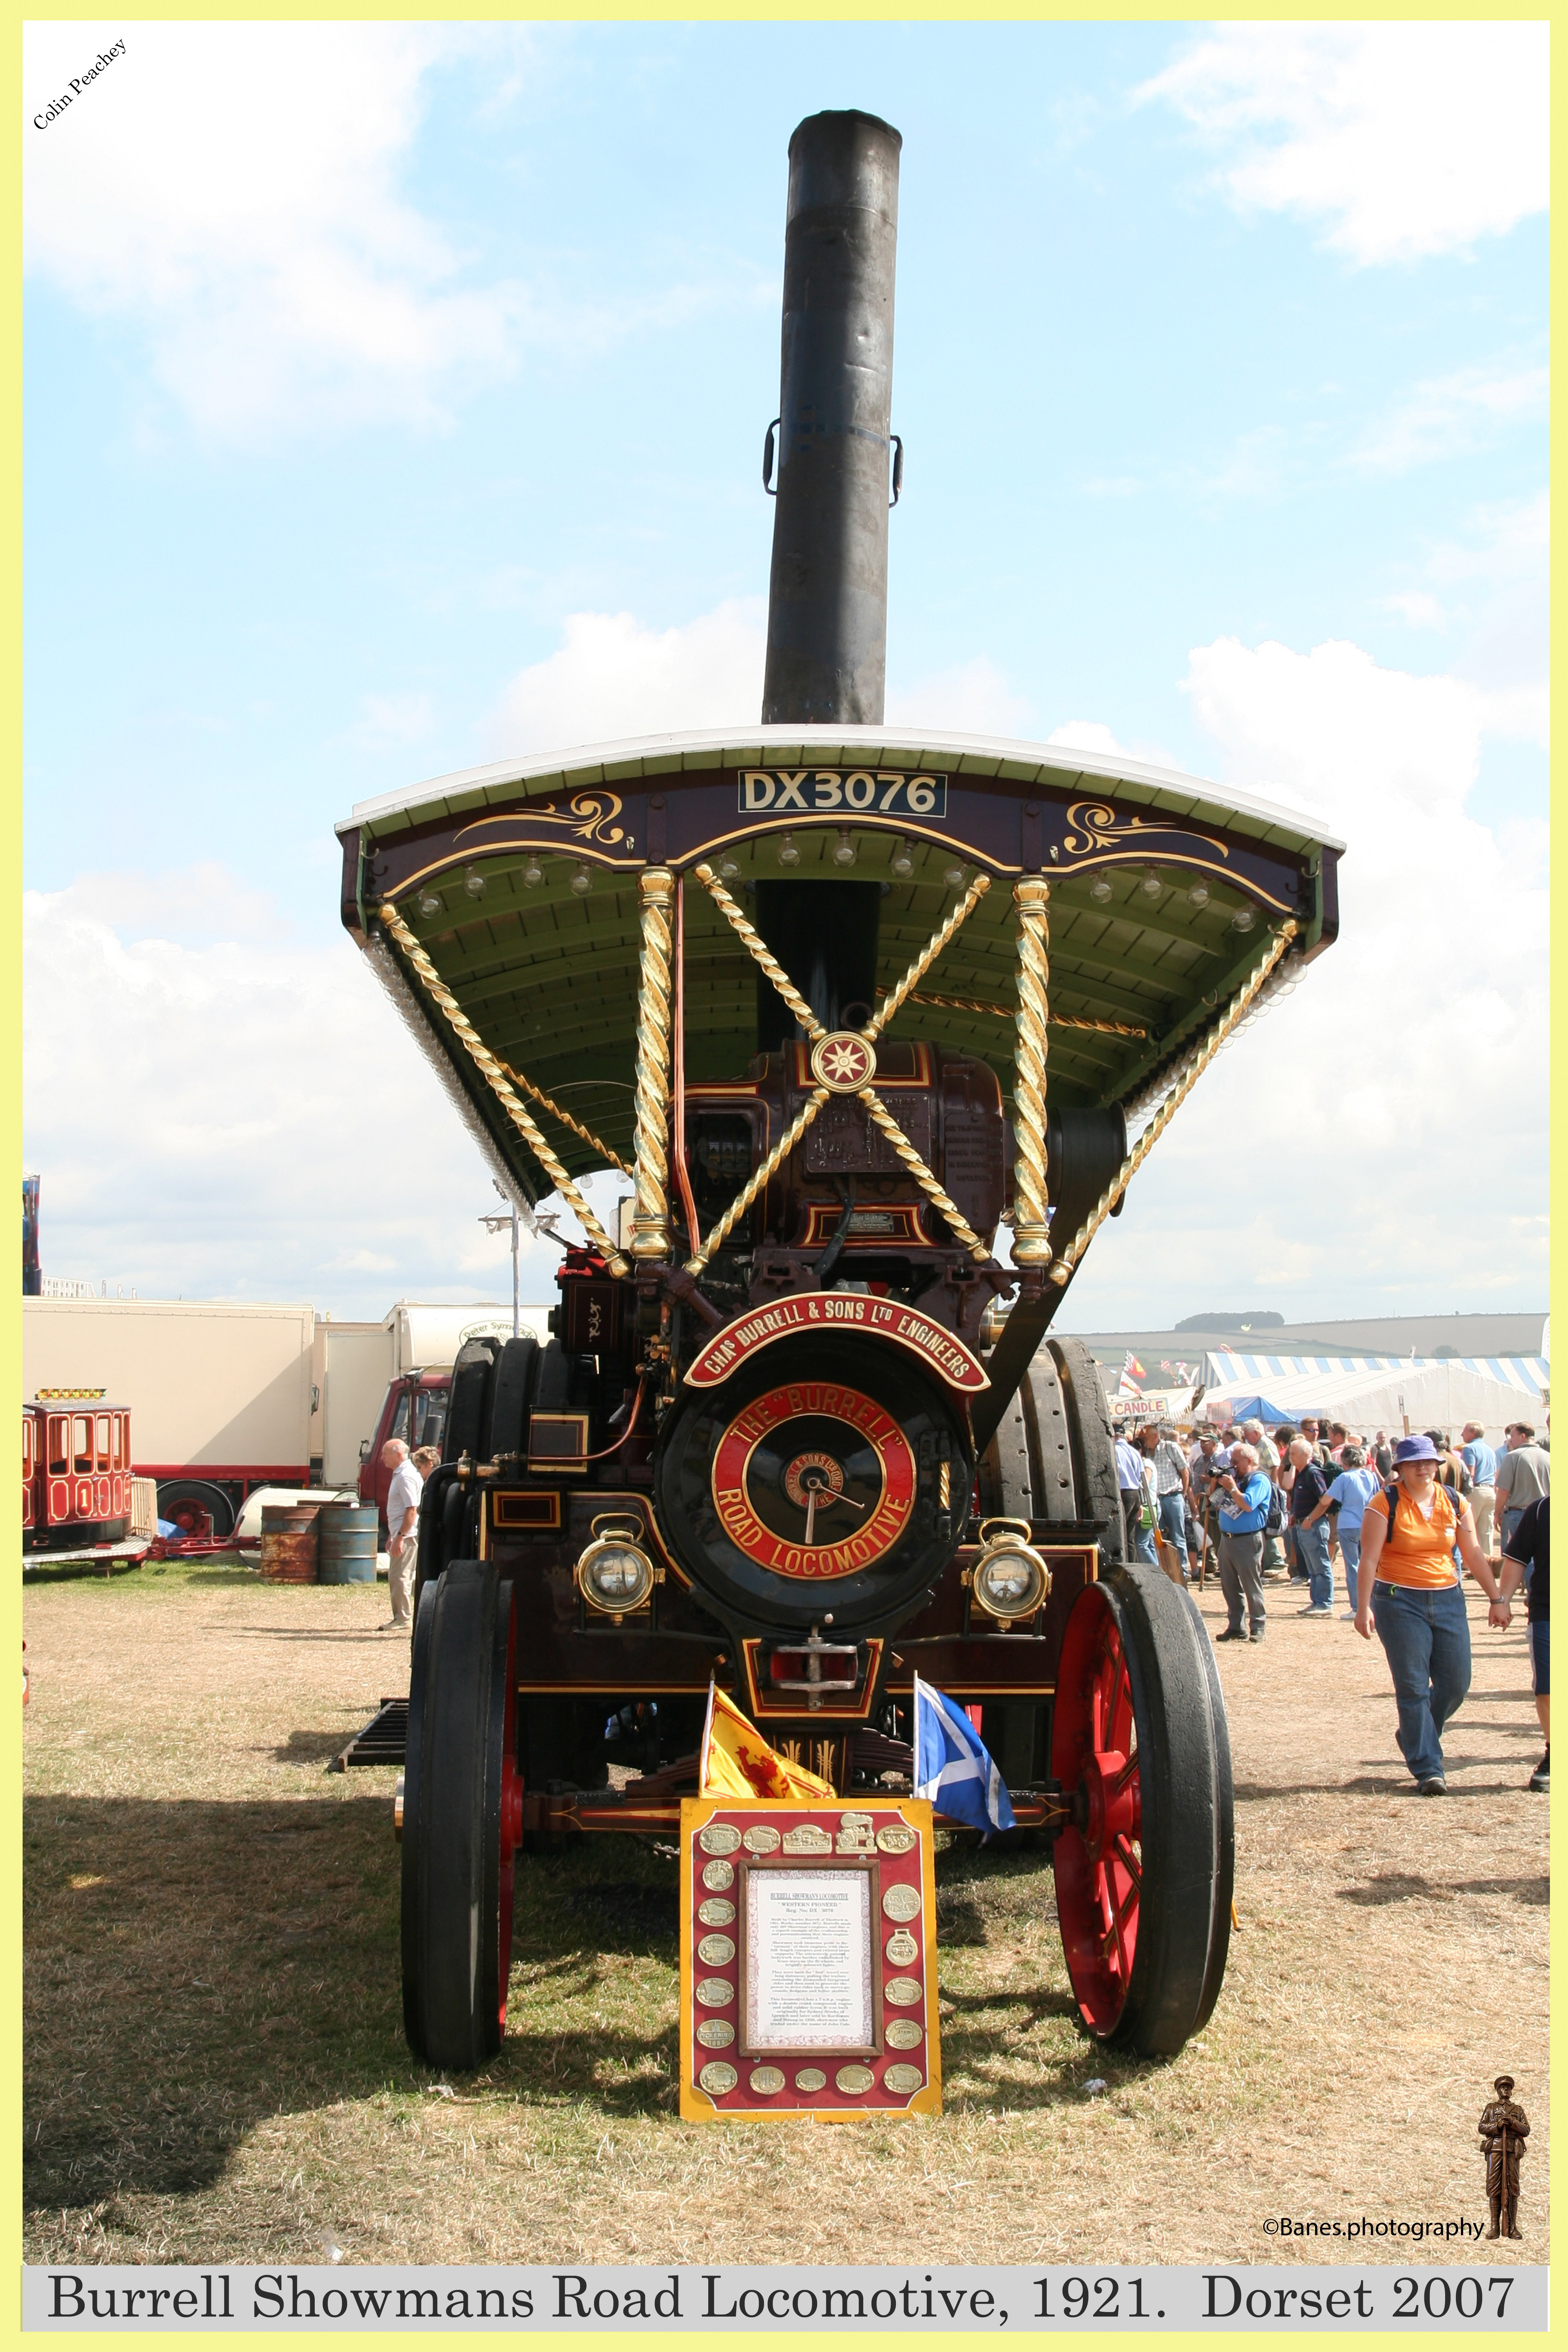 Burrell Showmans Road Locomotive, Reg No. DX 3076, 1921